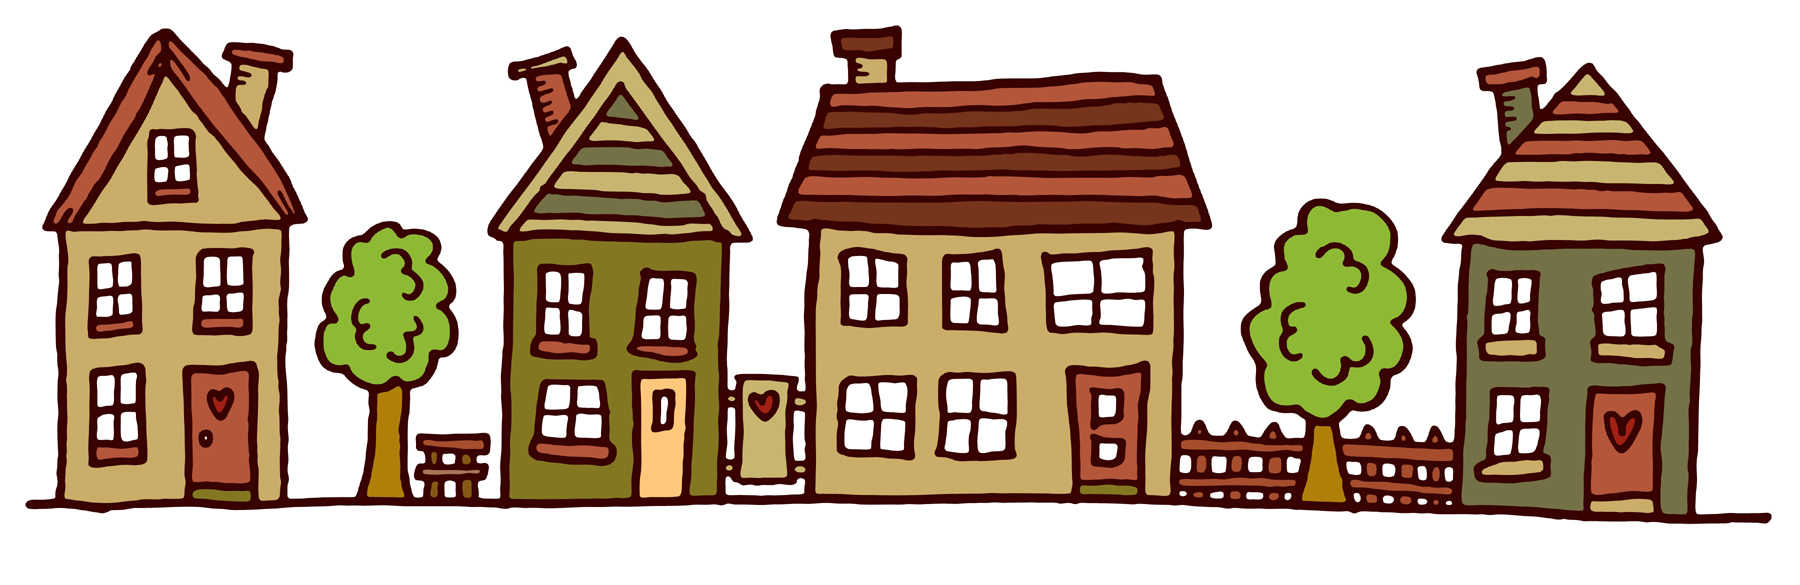 Support housing our community. Neighbors clipart downtown